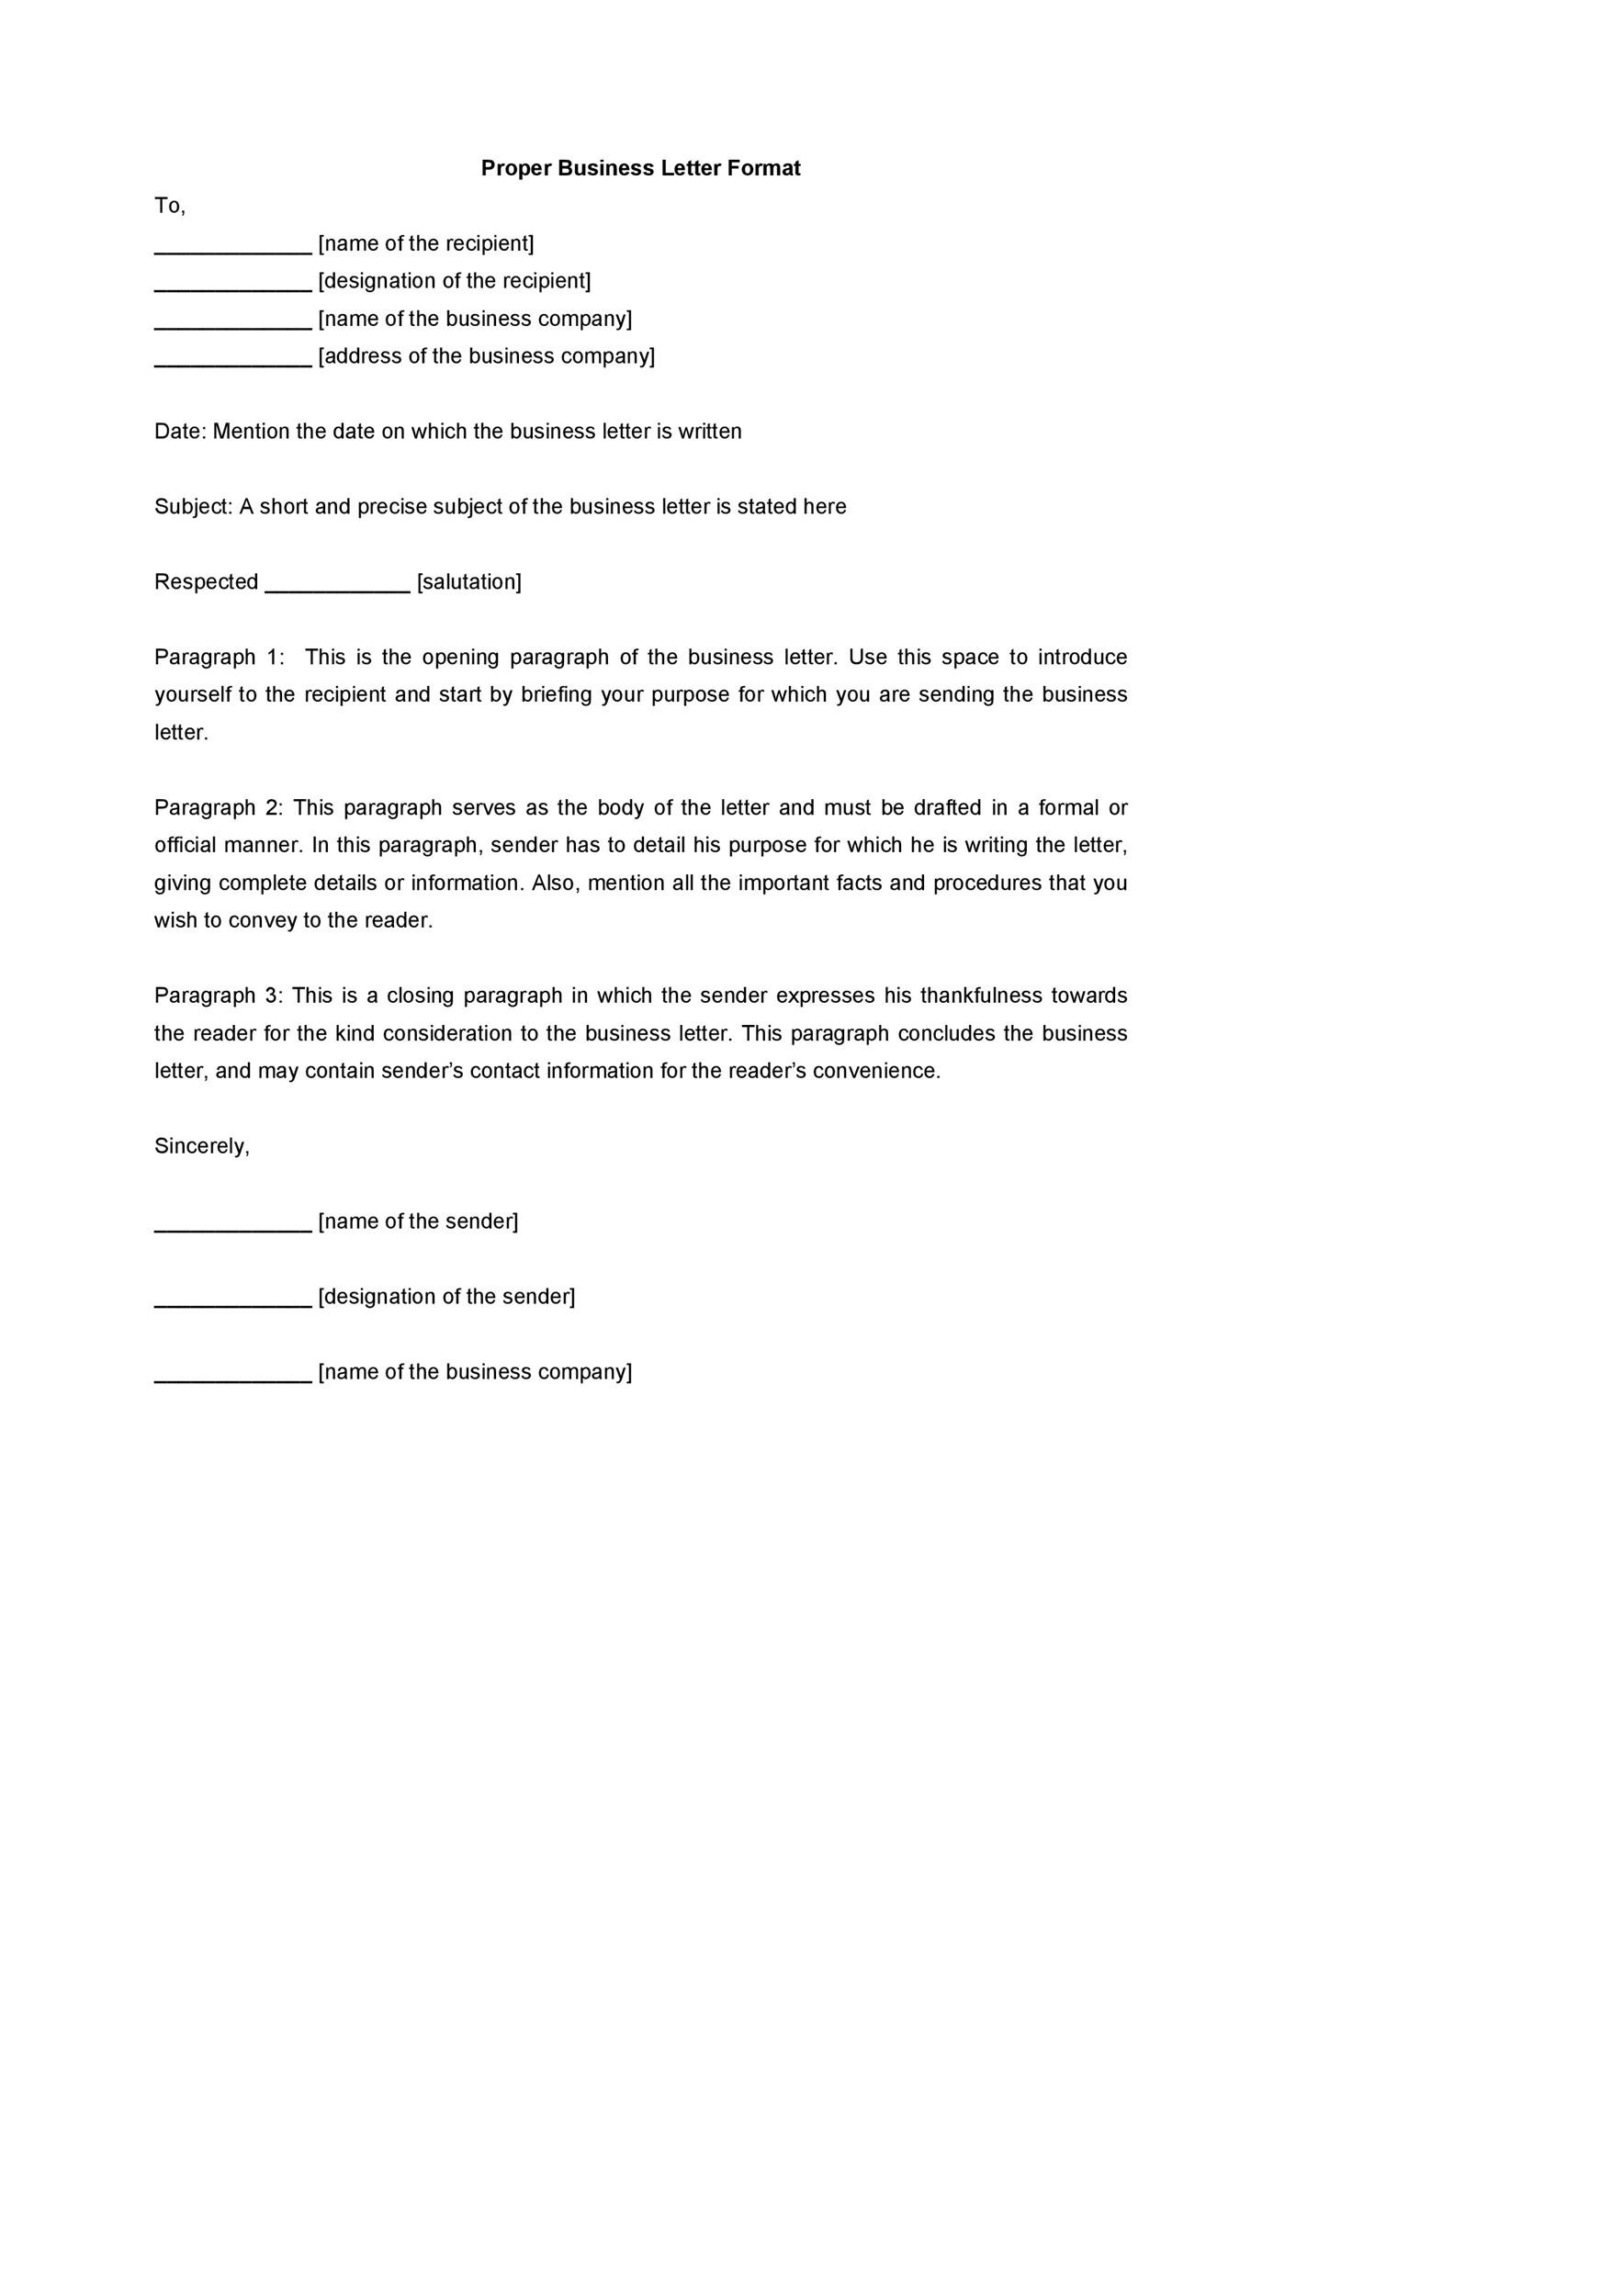 35 Formal Business Letter Format Templates Examples Template Lab – Standard Business Letters Format